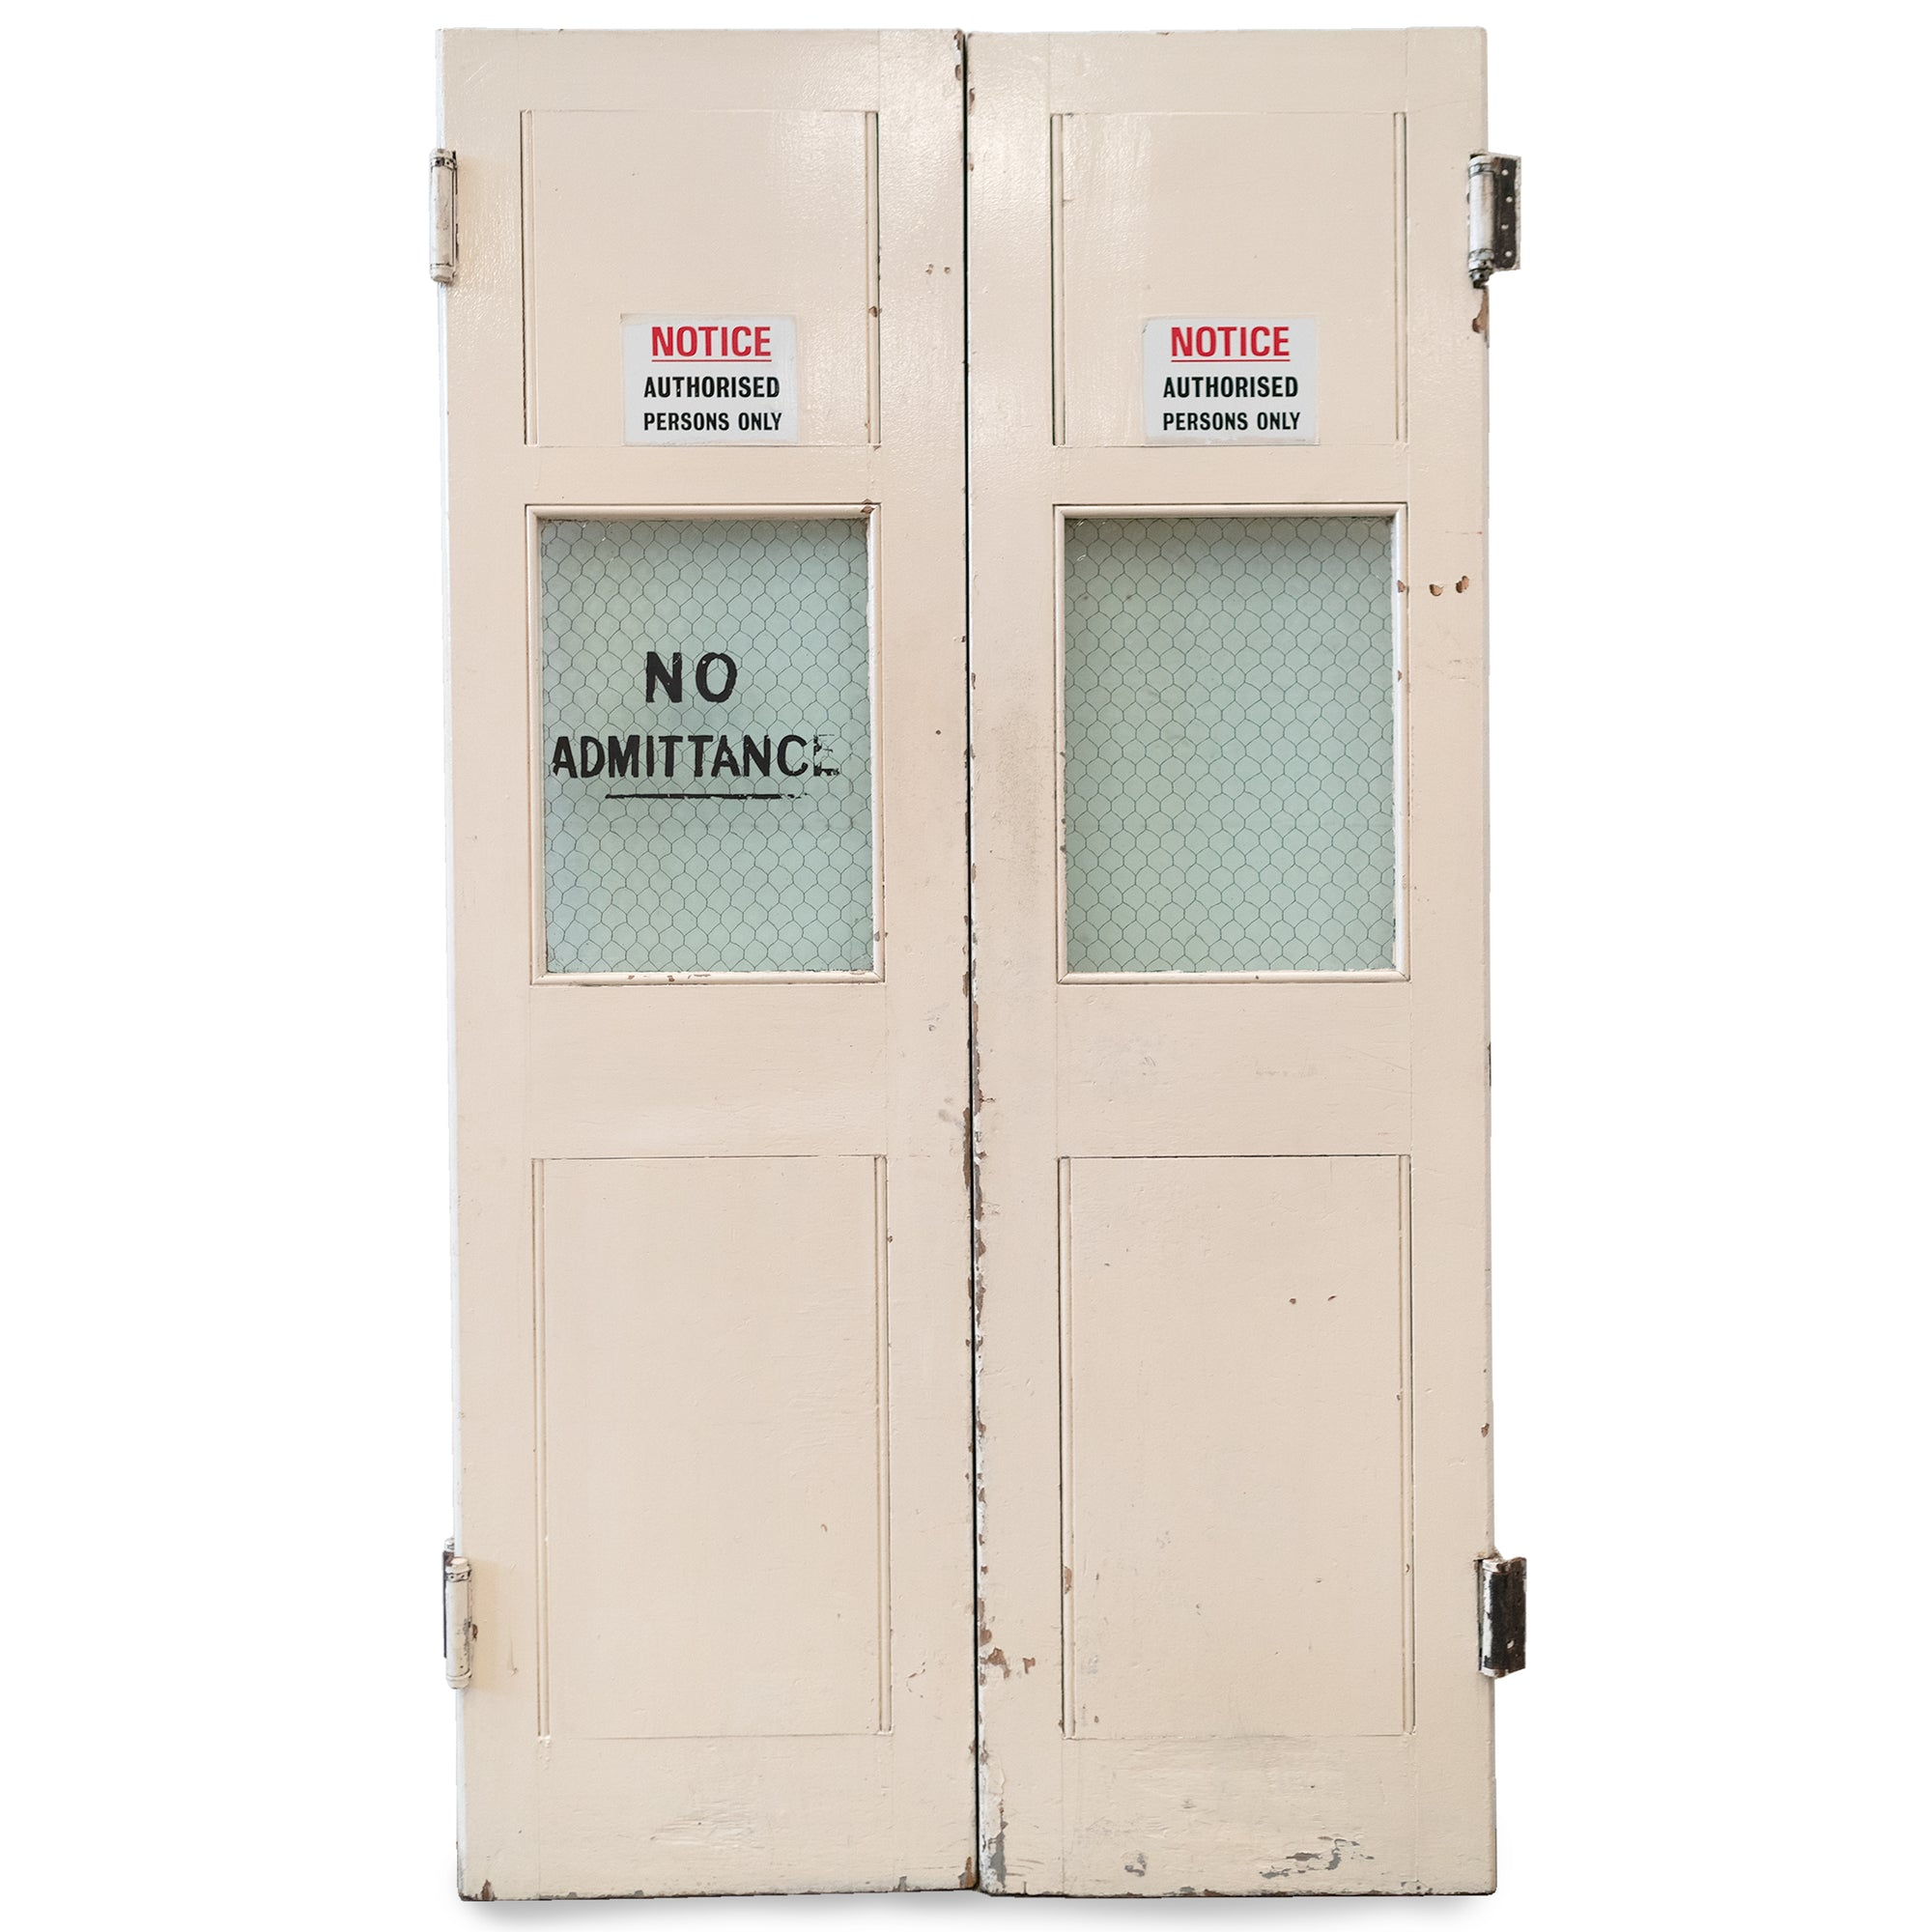 Glazed Emergency Exit Warehouse Doors 212cm x 117cm